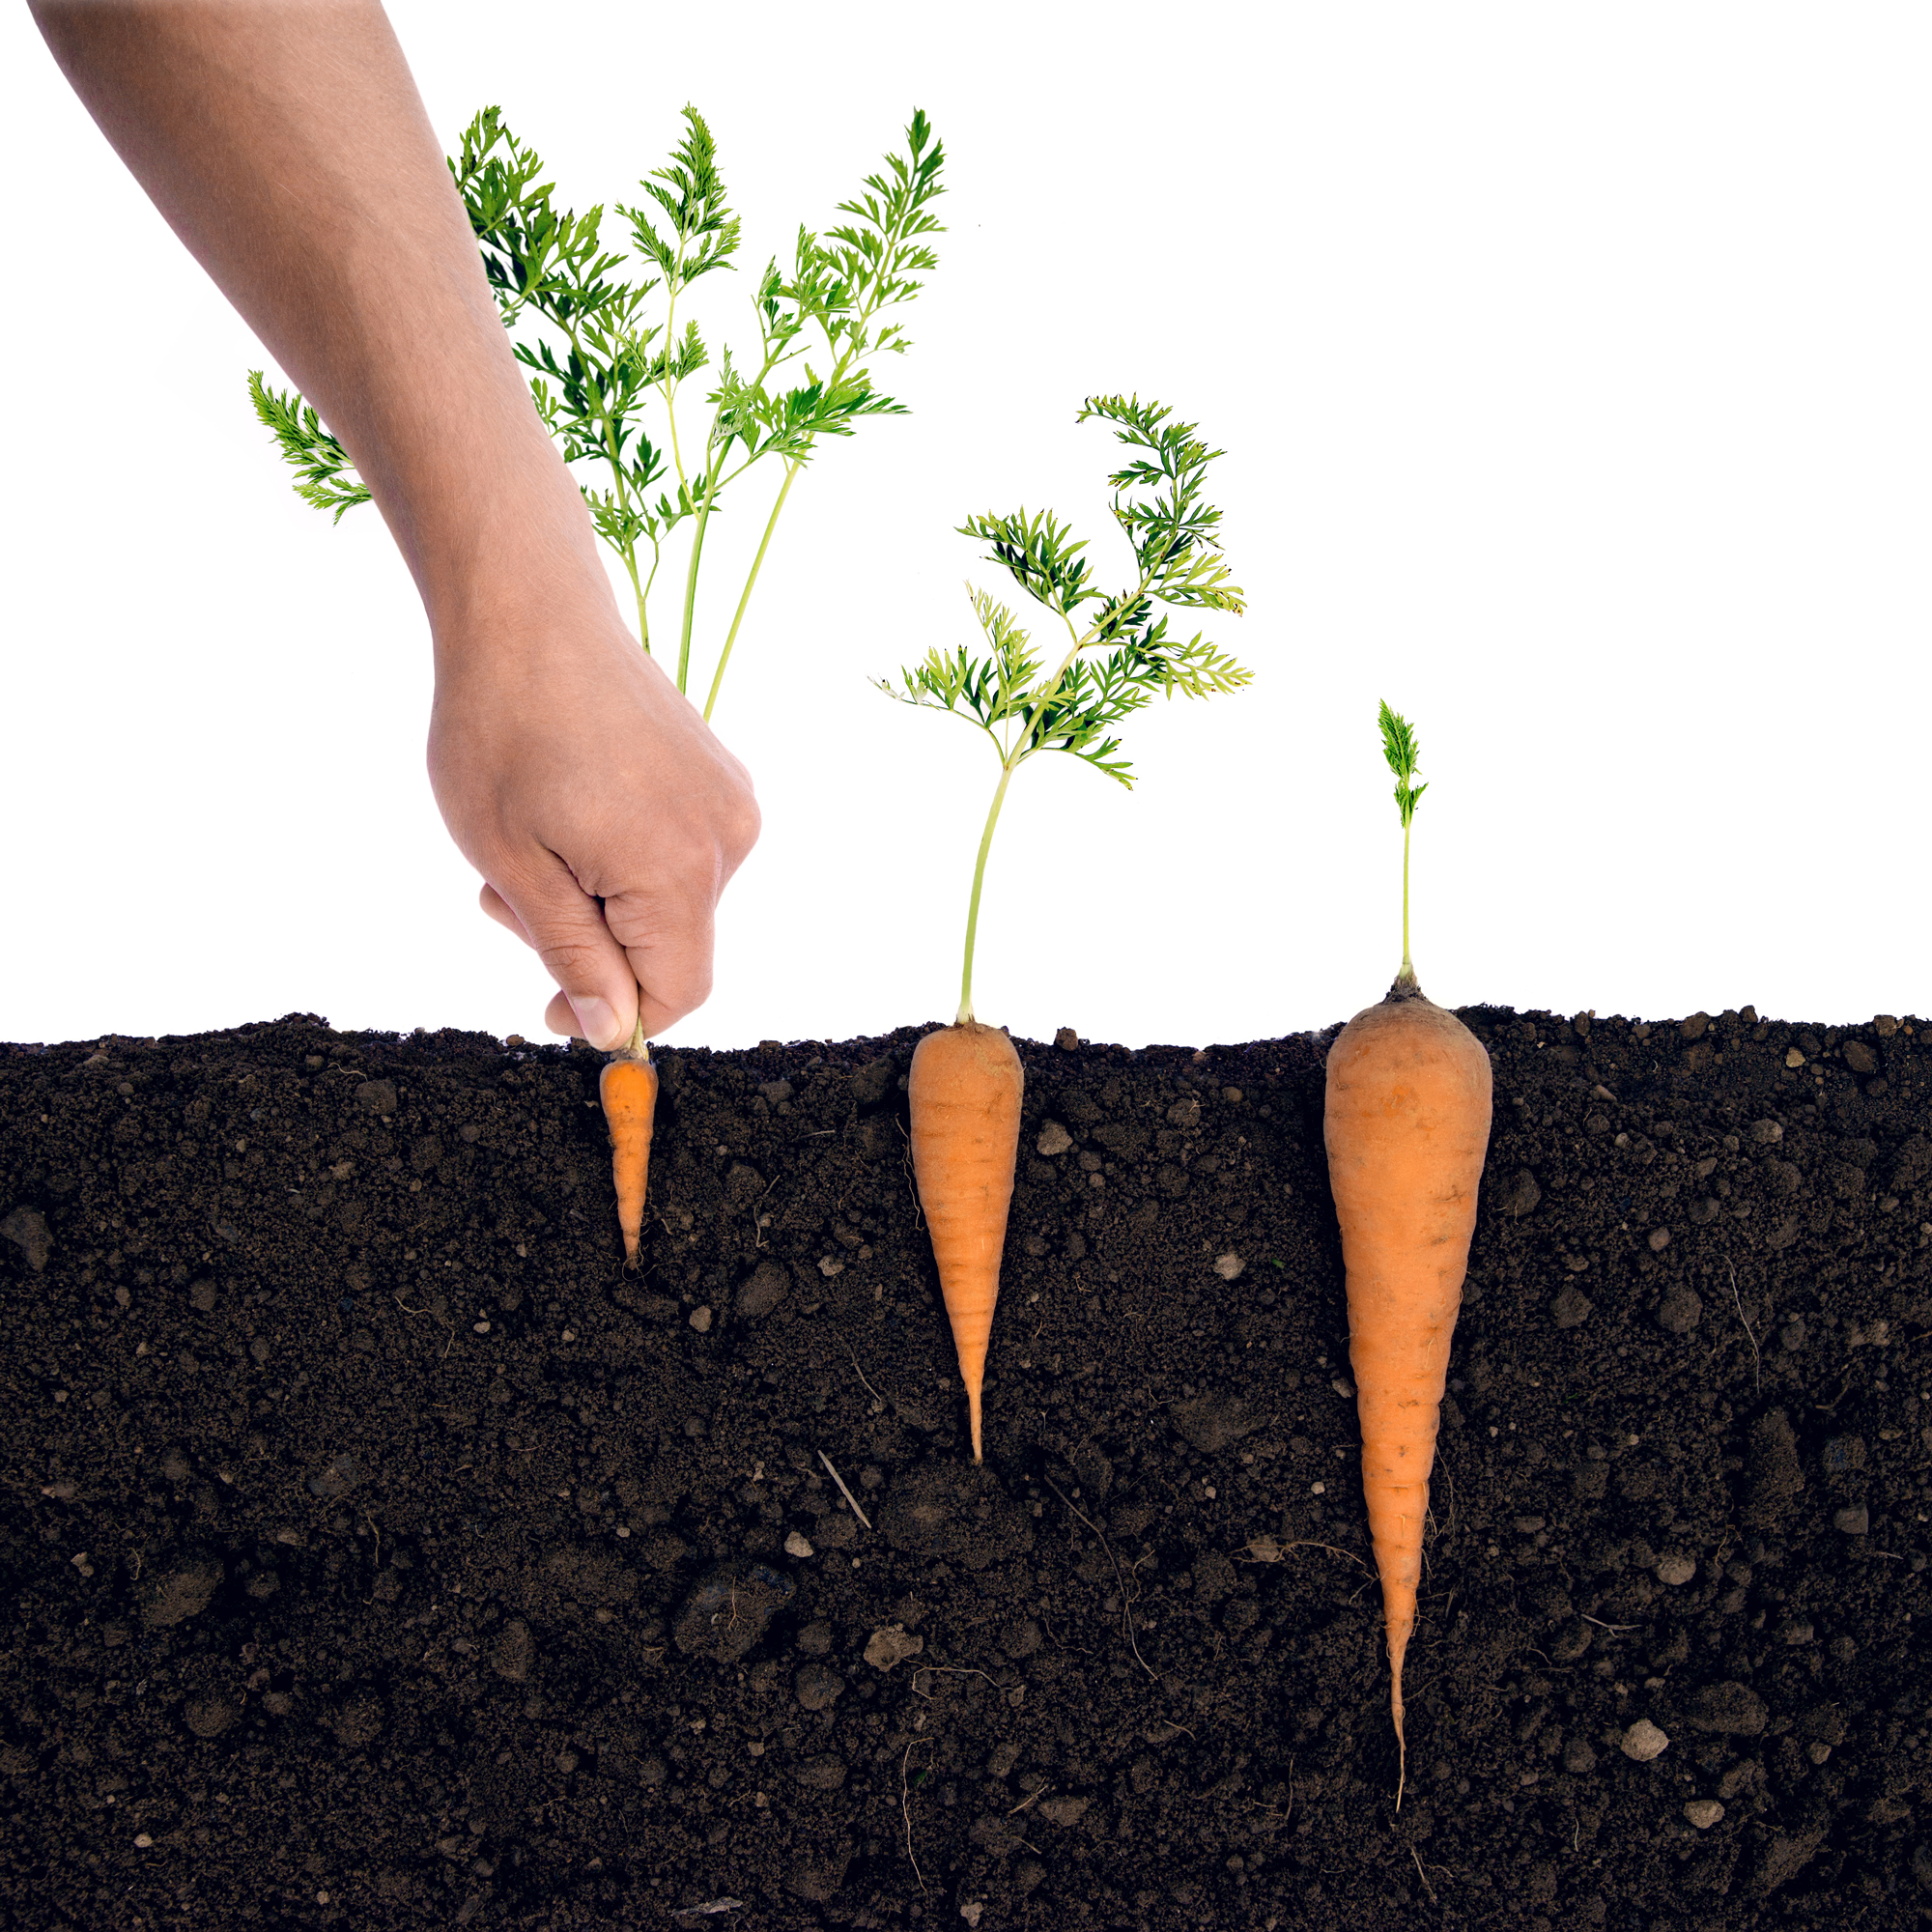 carrots being pulled out of dirt